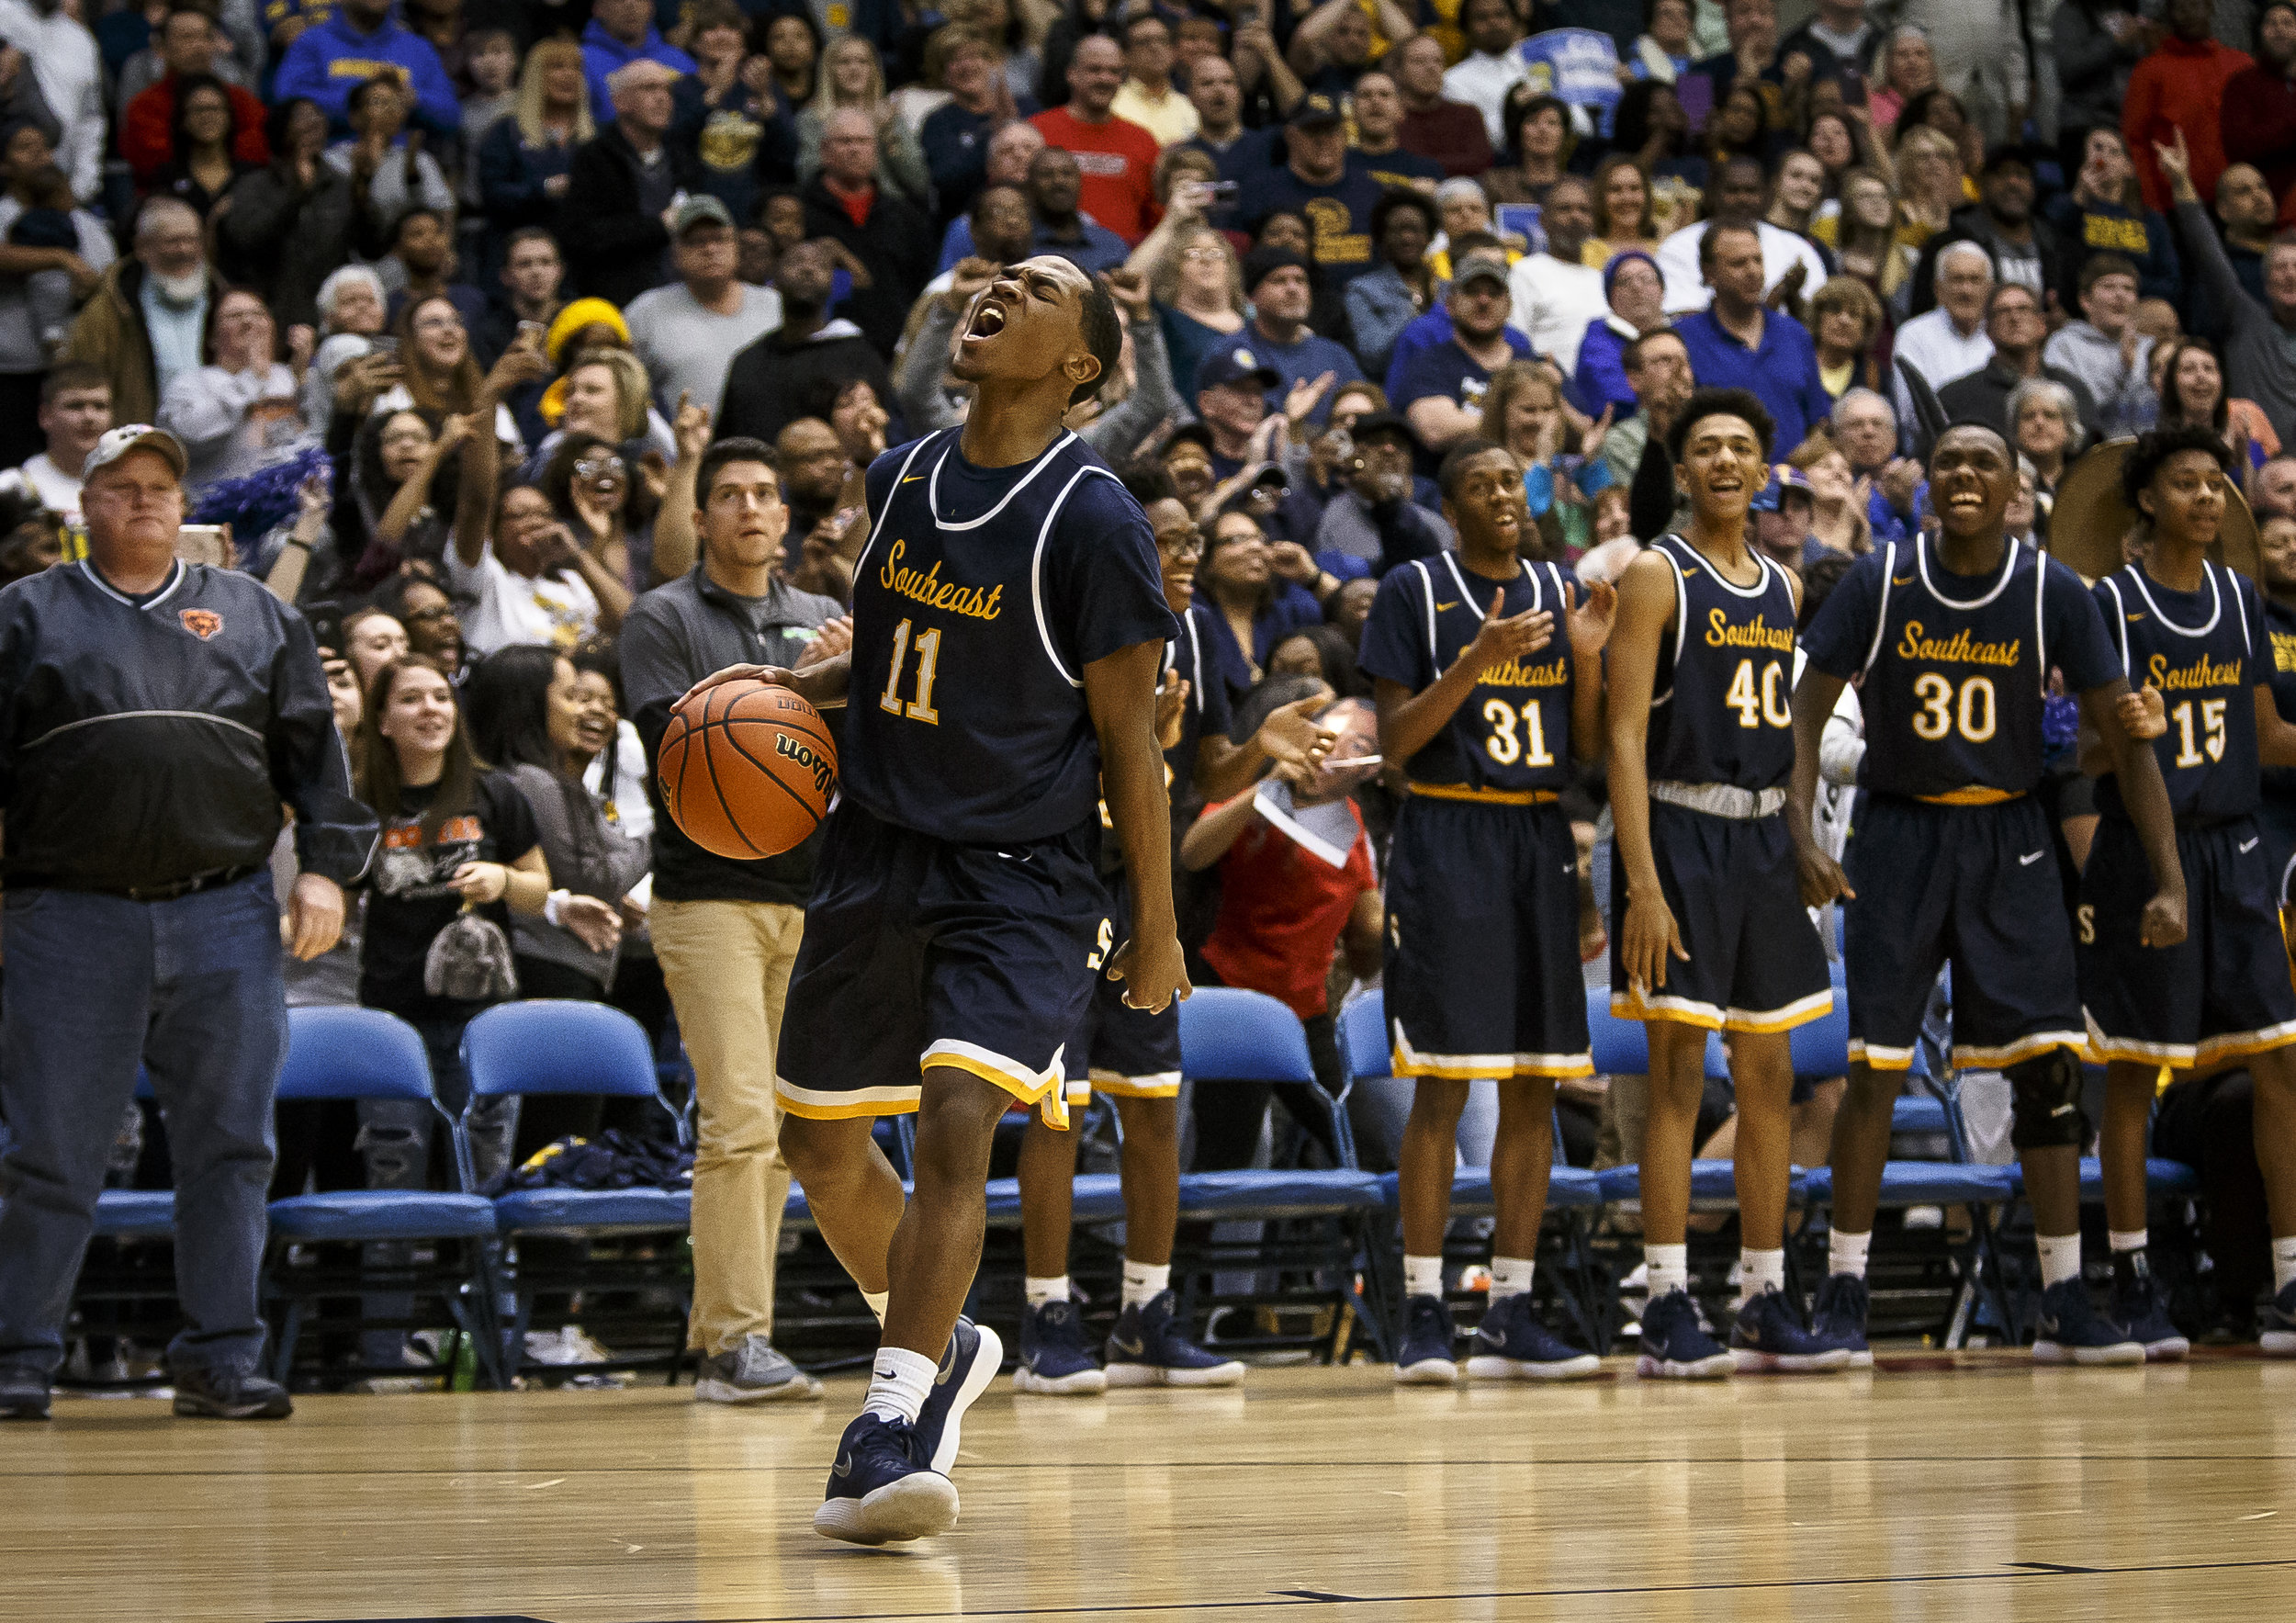 Southeast's Kobe Medley (11) screams out as the Spartans defeat Marion 56-51 in the Class 3A Springfield Supersectional at the Bank of Springfield Center, Tuesday, March 13, 2018, in Springfield, Ill. [Justin L. Fowler/The State Journal-Register]